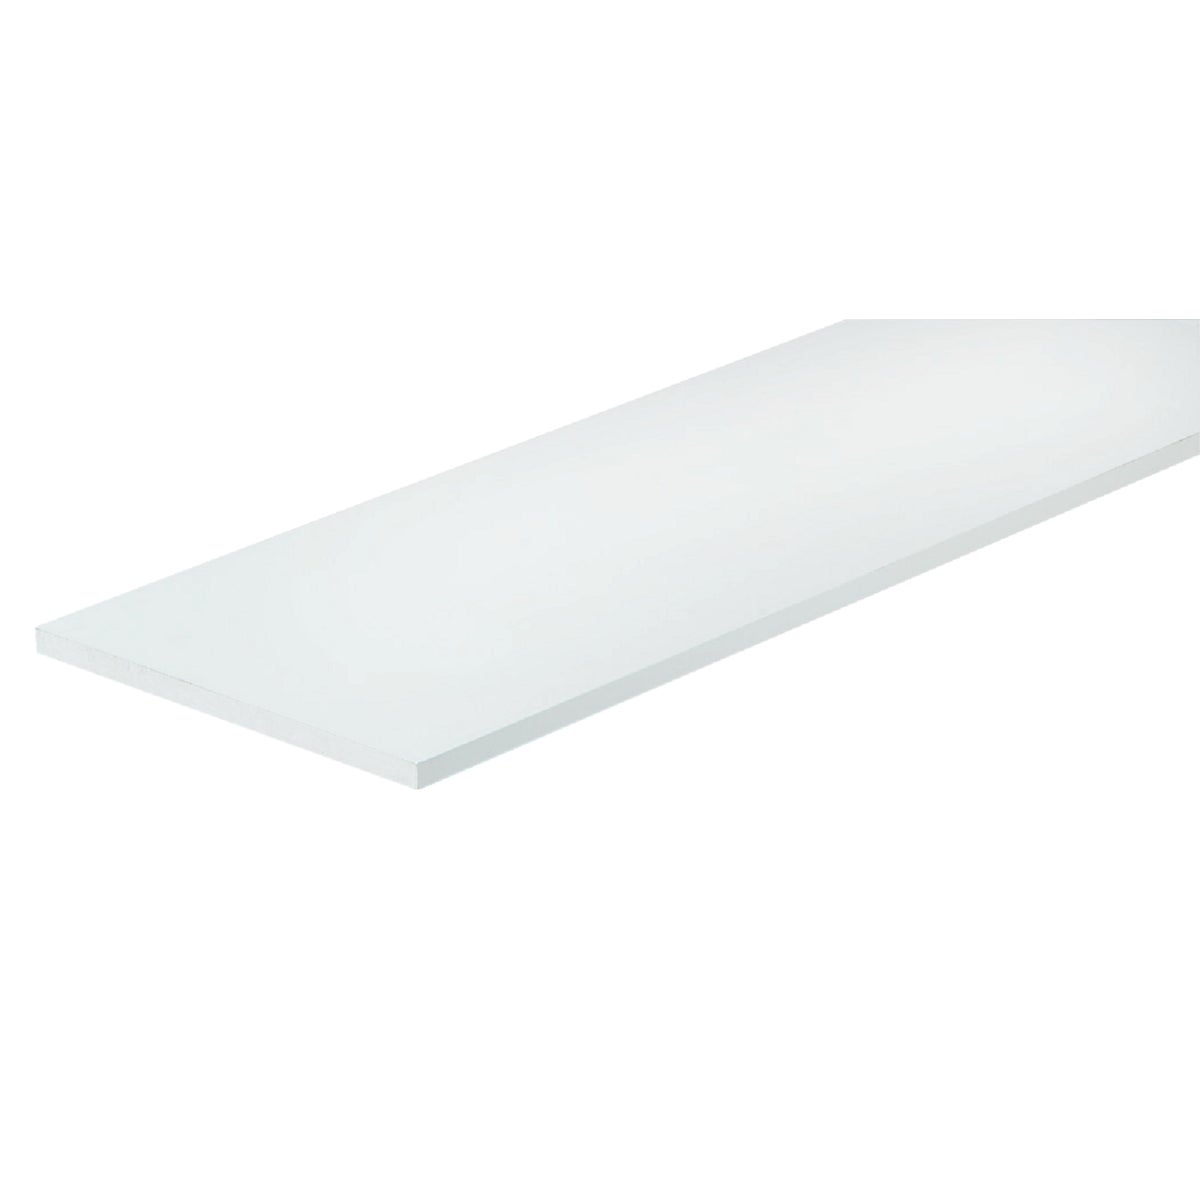 12X48 WHITE SHELF - 1980WH12X48 by Knape & Vogt Mfg Co